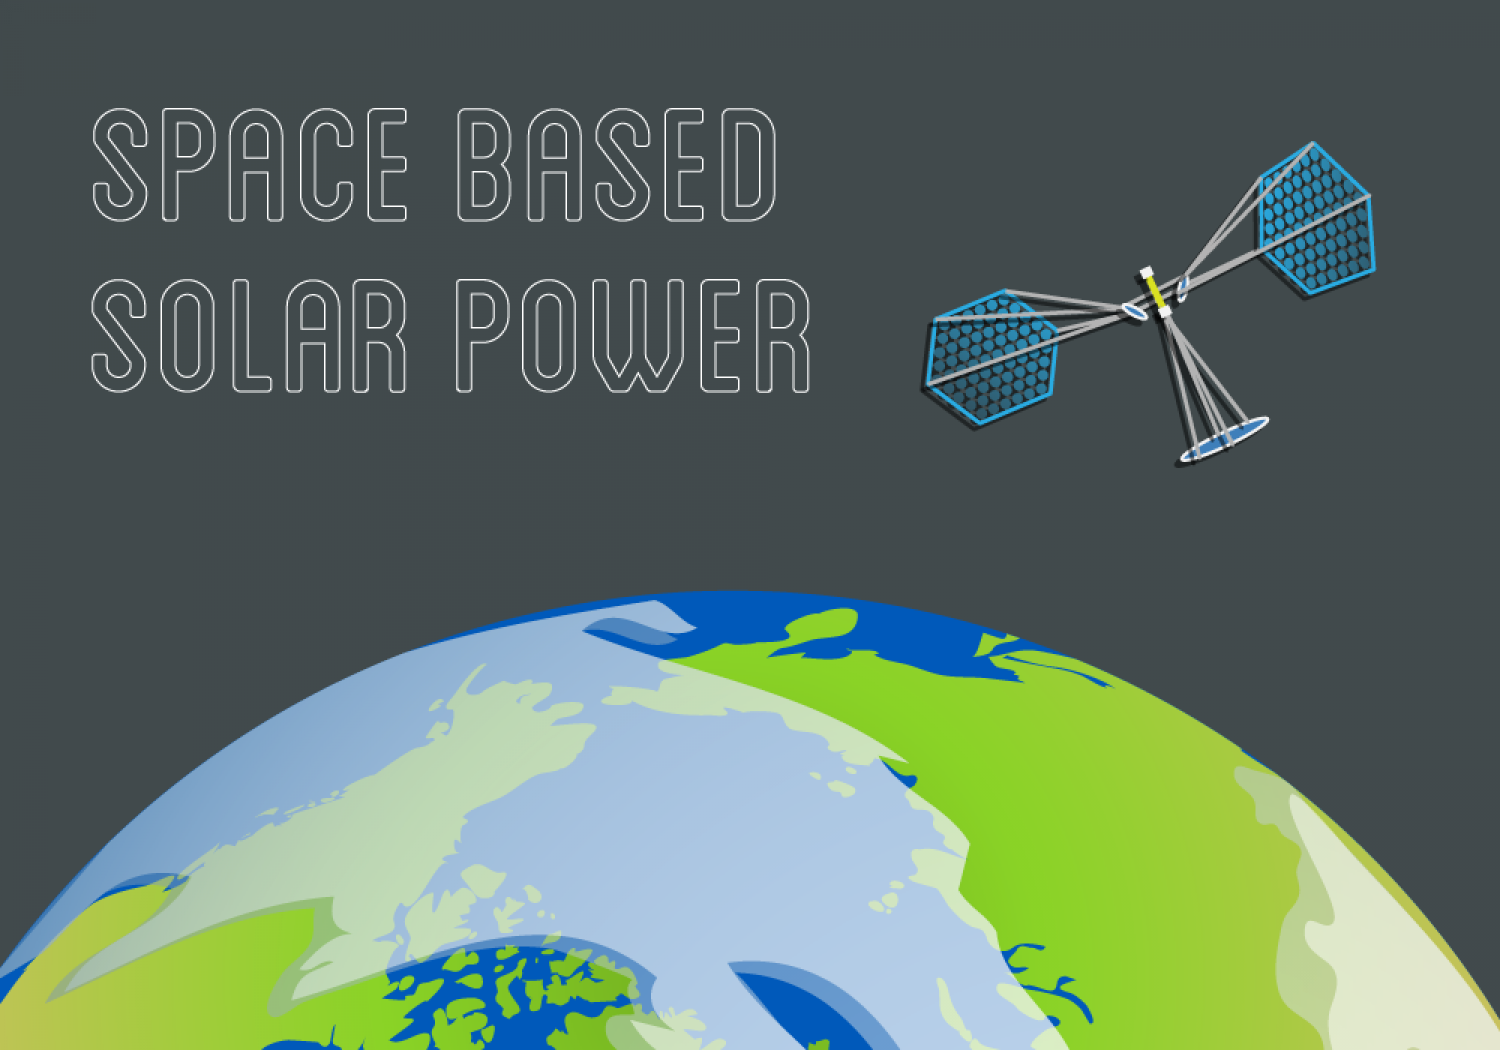 space based solar power